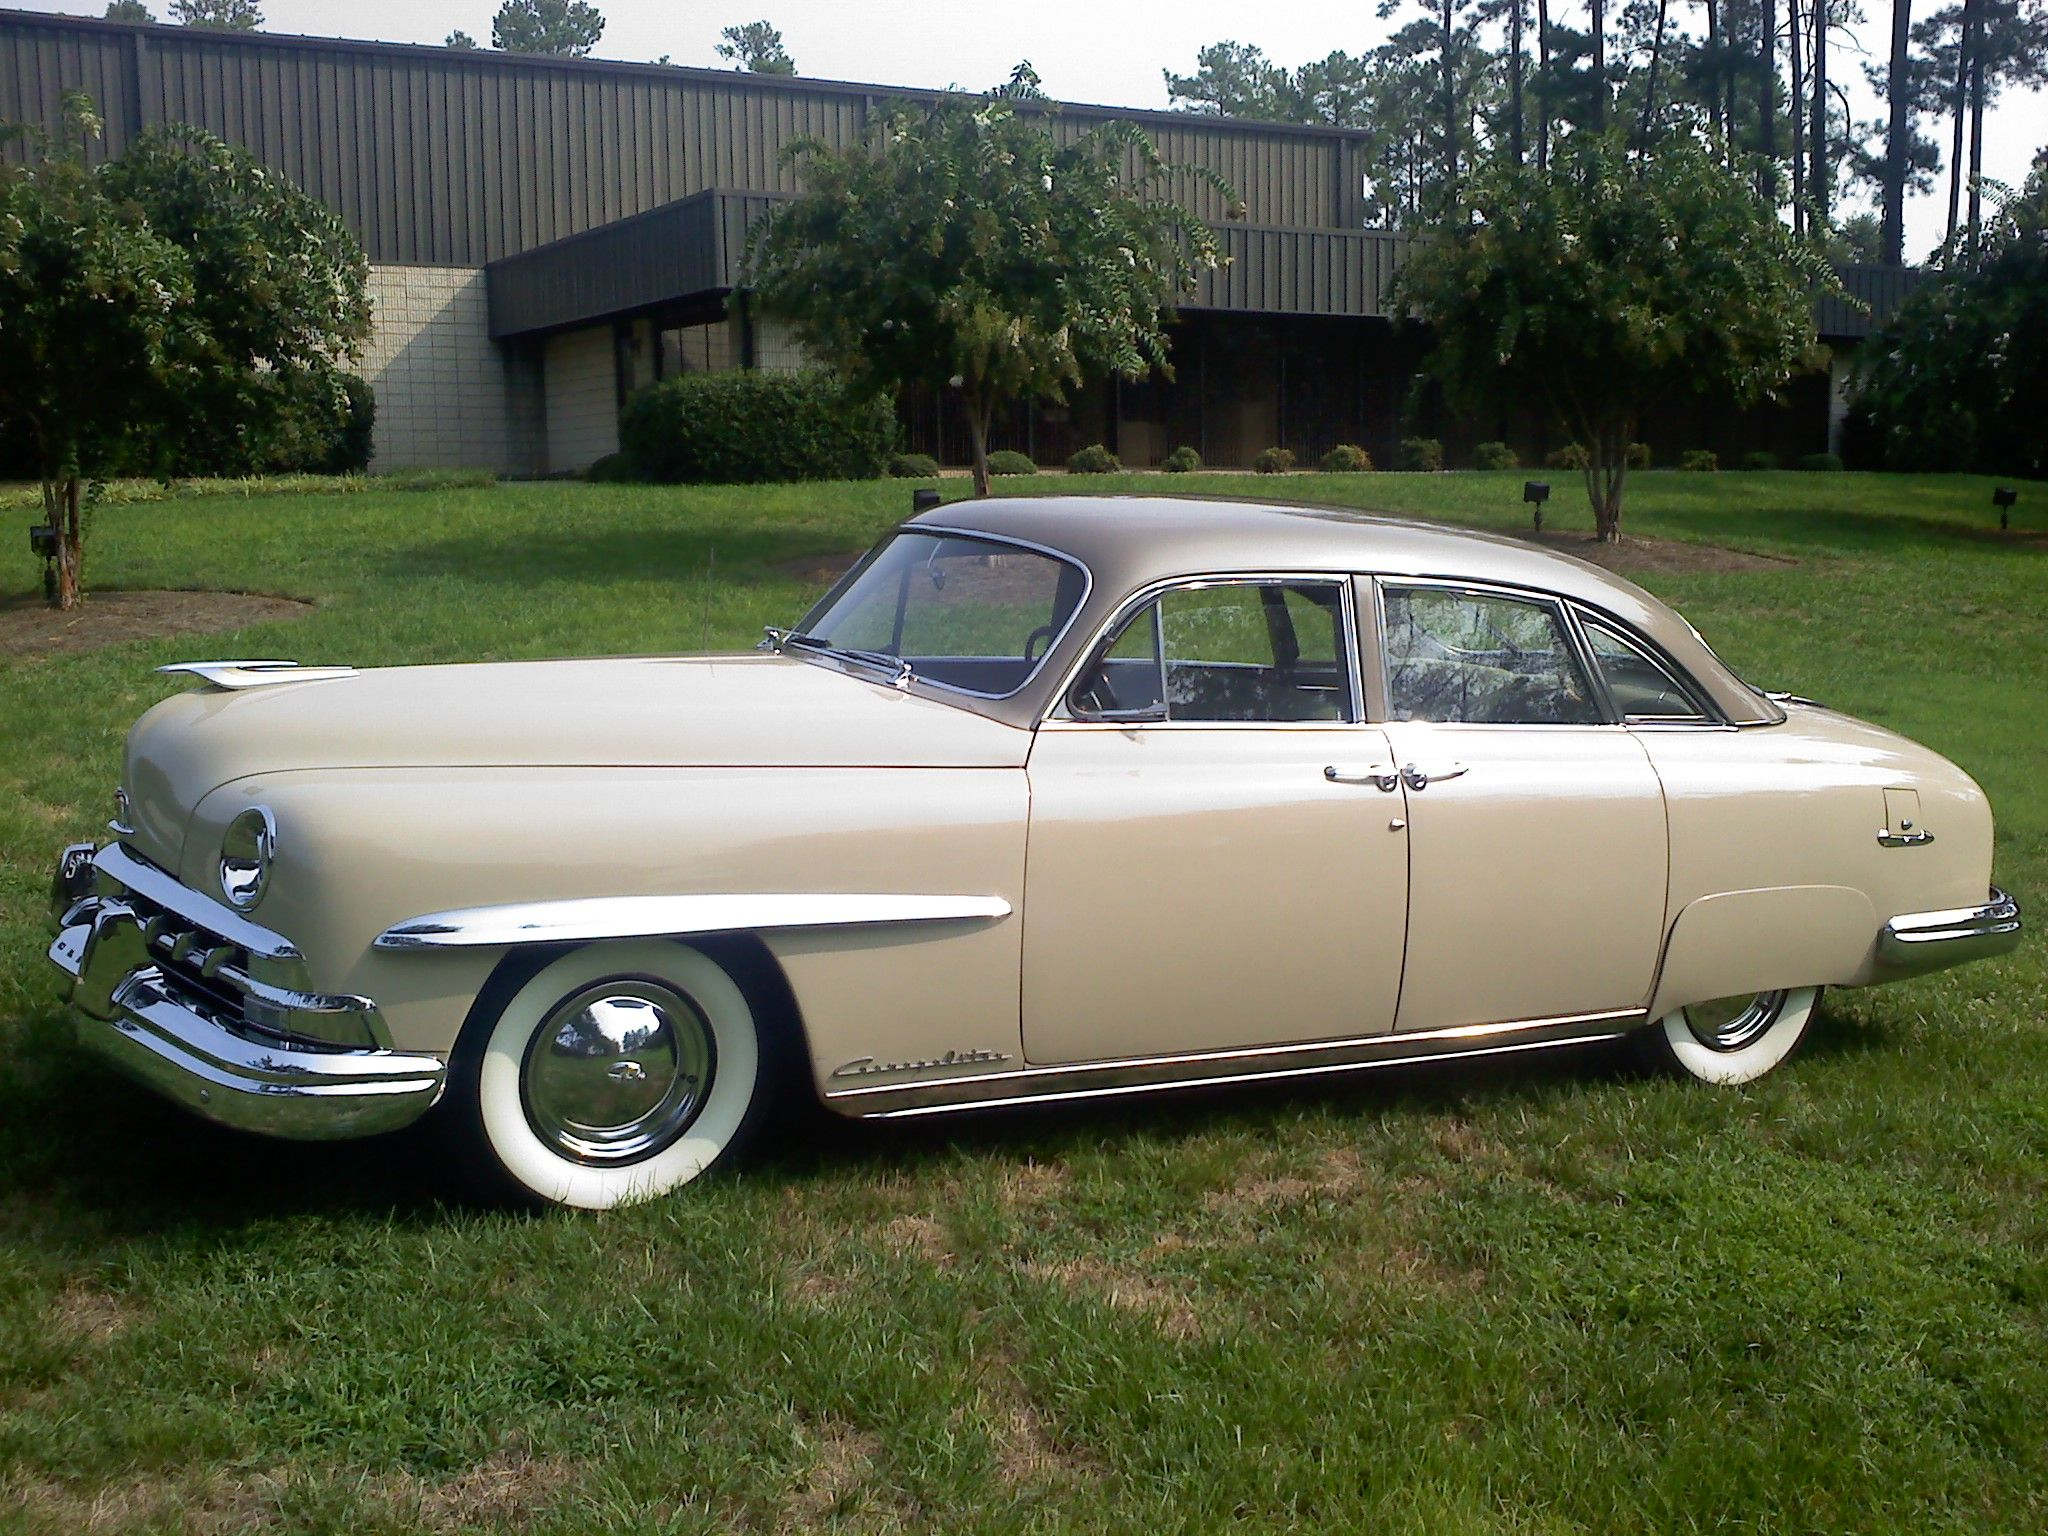 Classic Cars for Sale | 1950 Lincoln Cosmopolitan | Lincoln ...